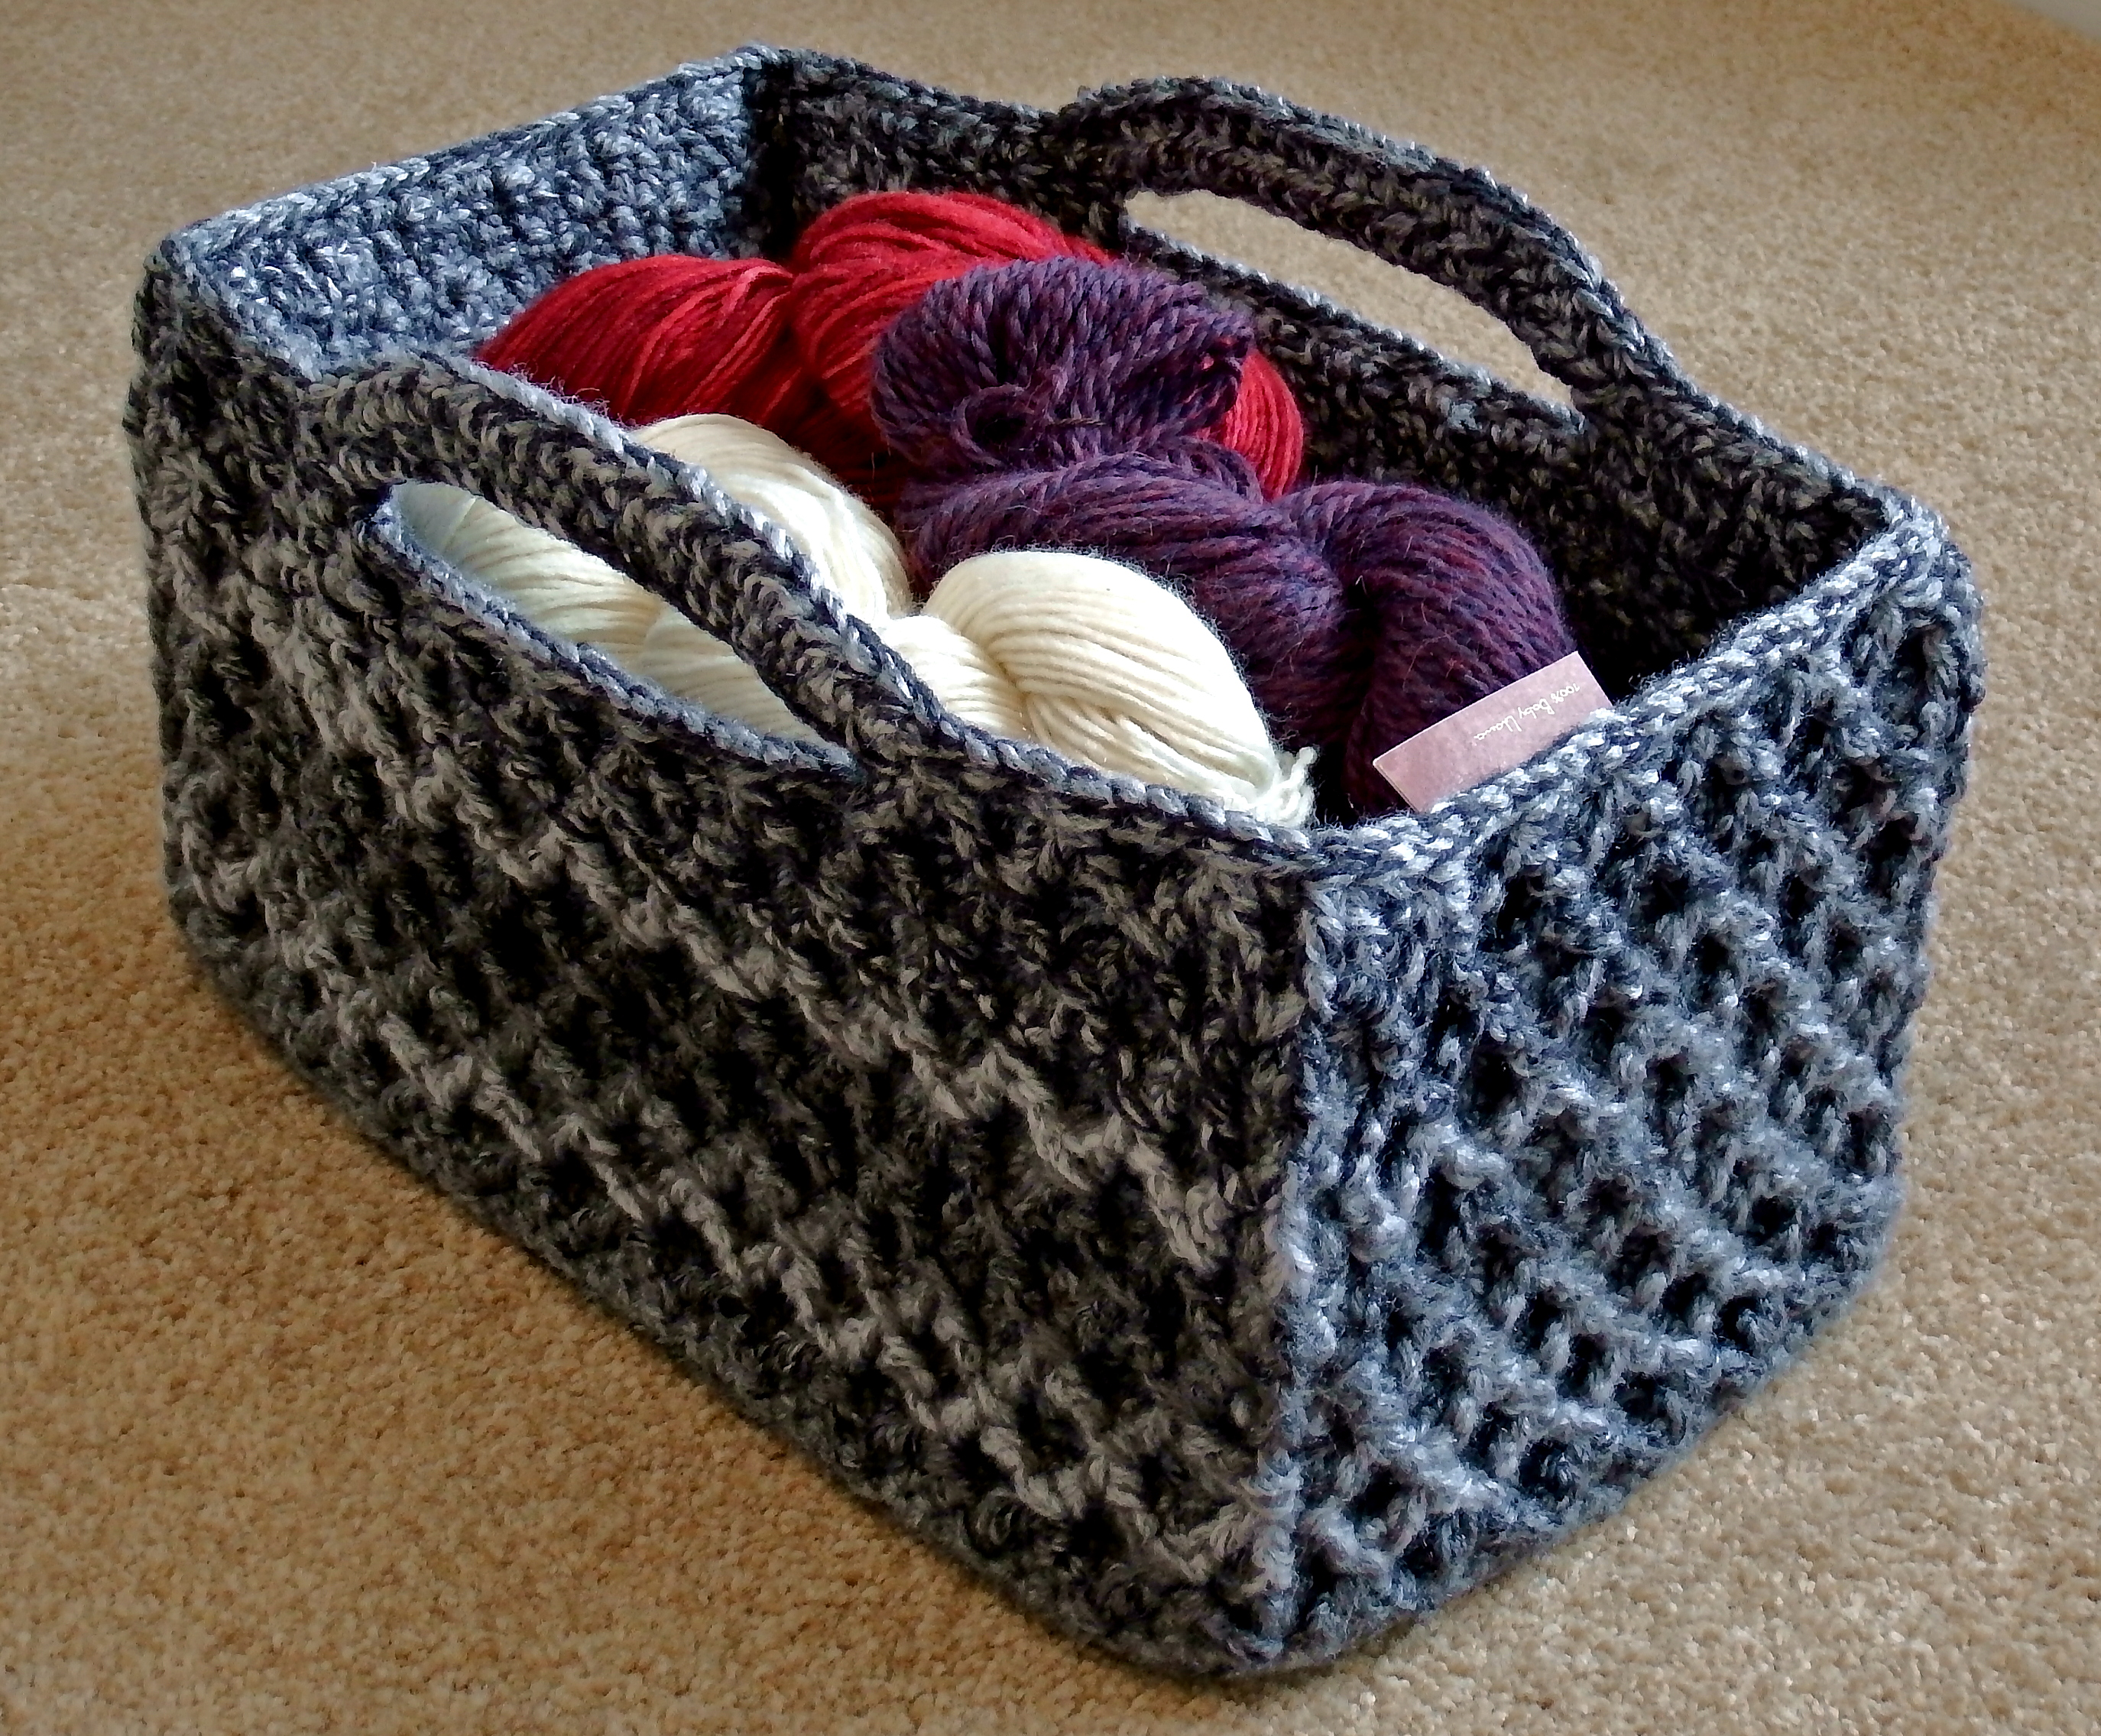 26 Crochet Basket Patterns for Beginners - Patterns Hub